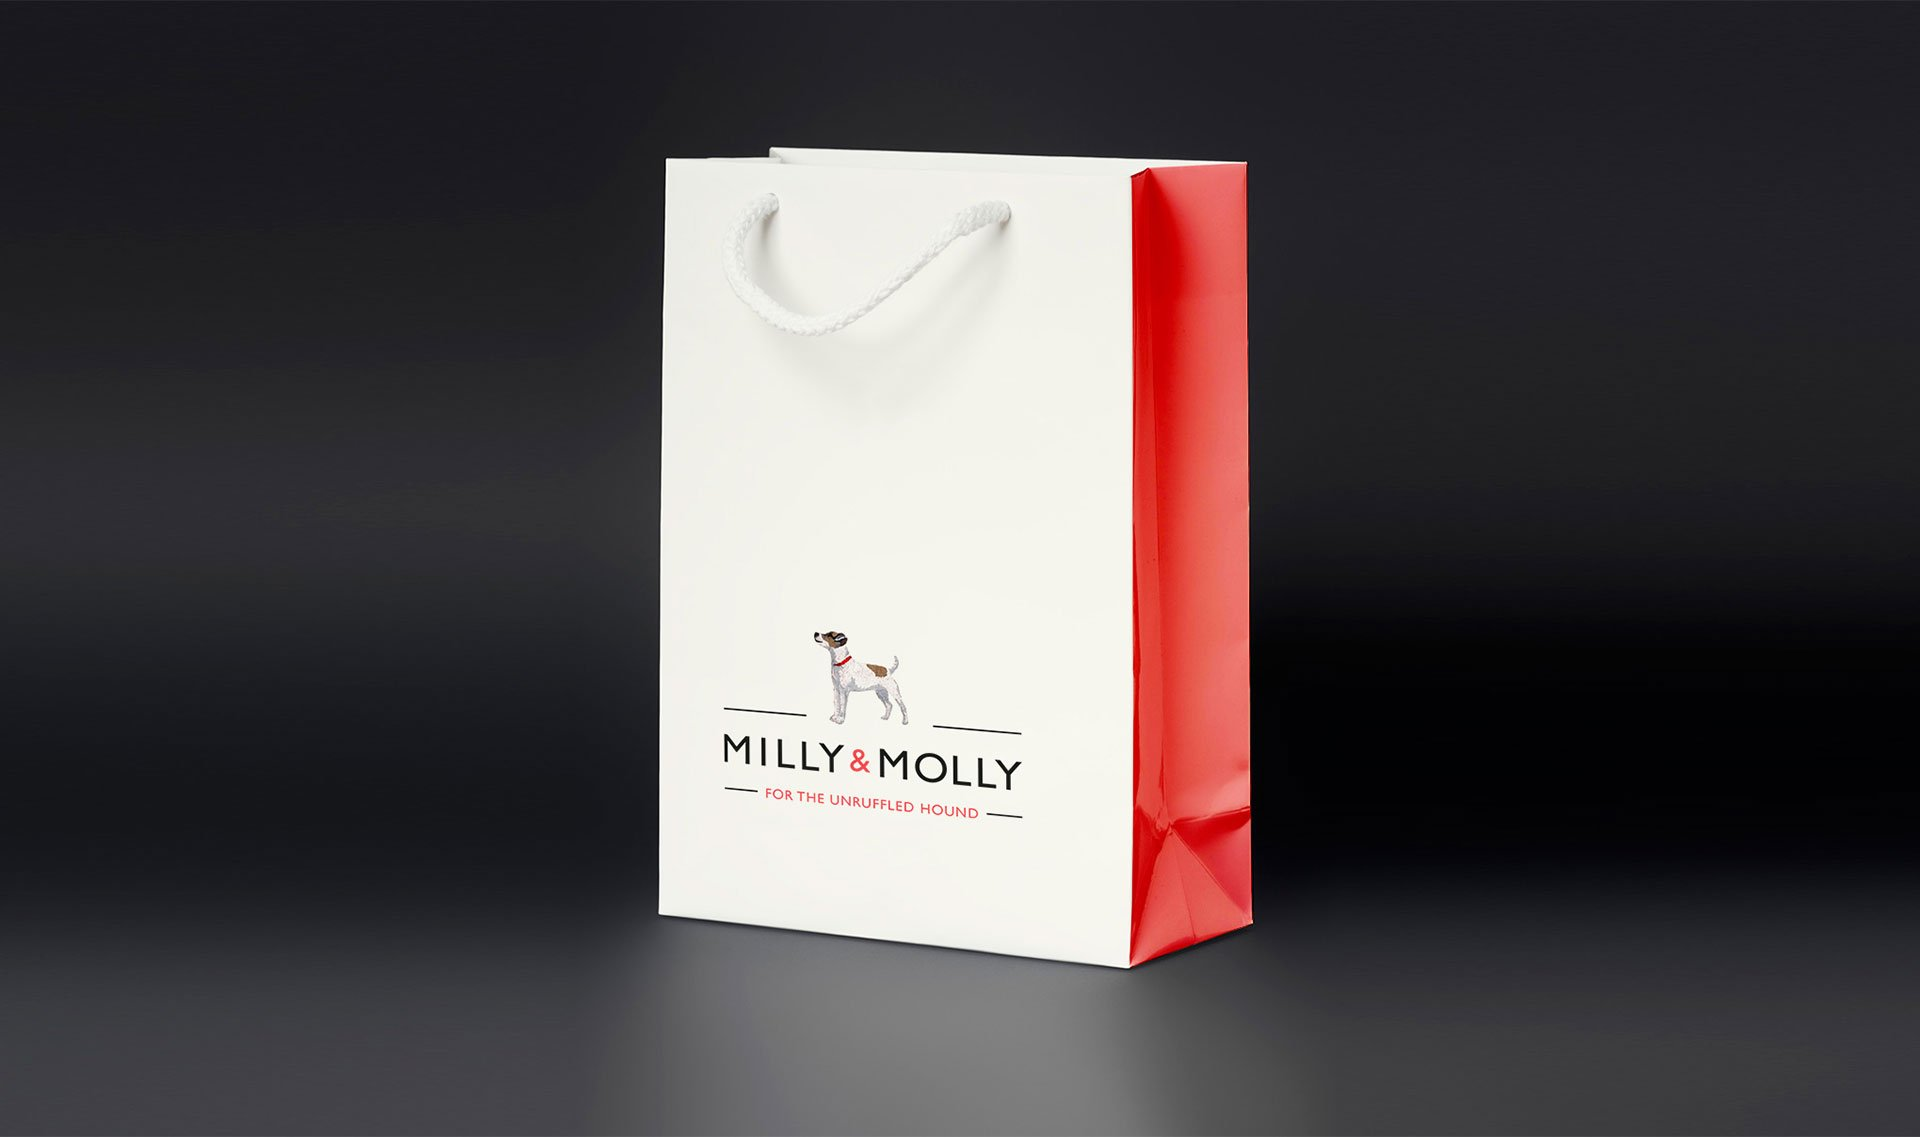 Branded paper bag. MILLY & MOLLY - Flipflop Design Agency